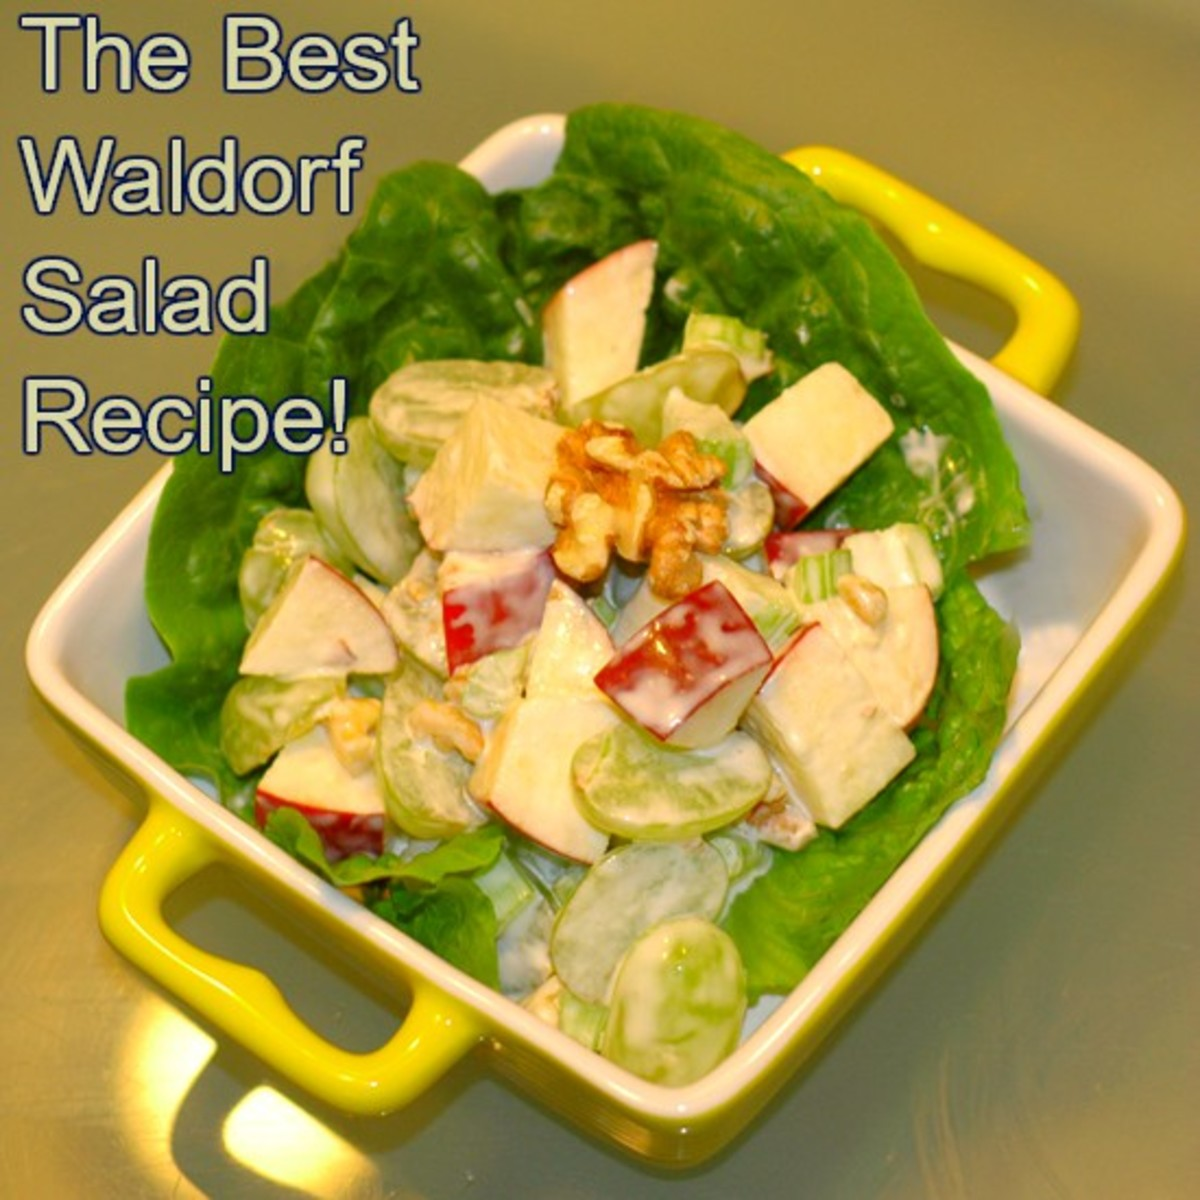 Waldorf Salad Recipe: The Simple, Sophisticated Fruit Salad